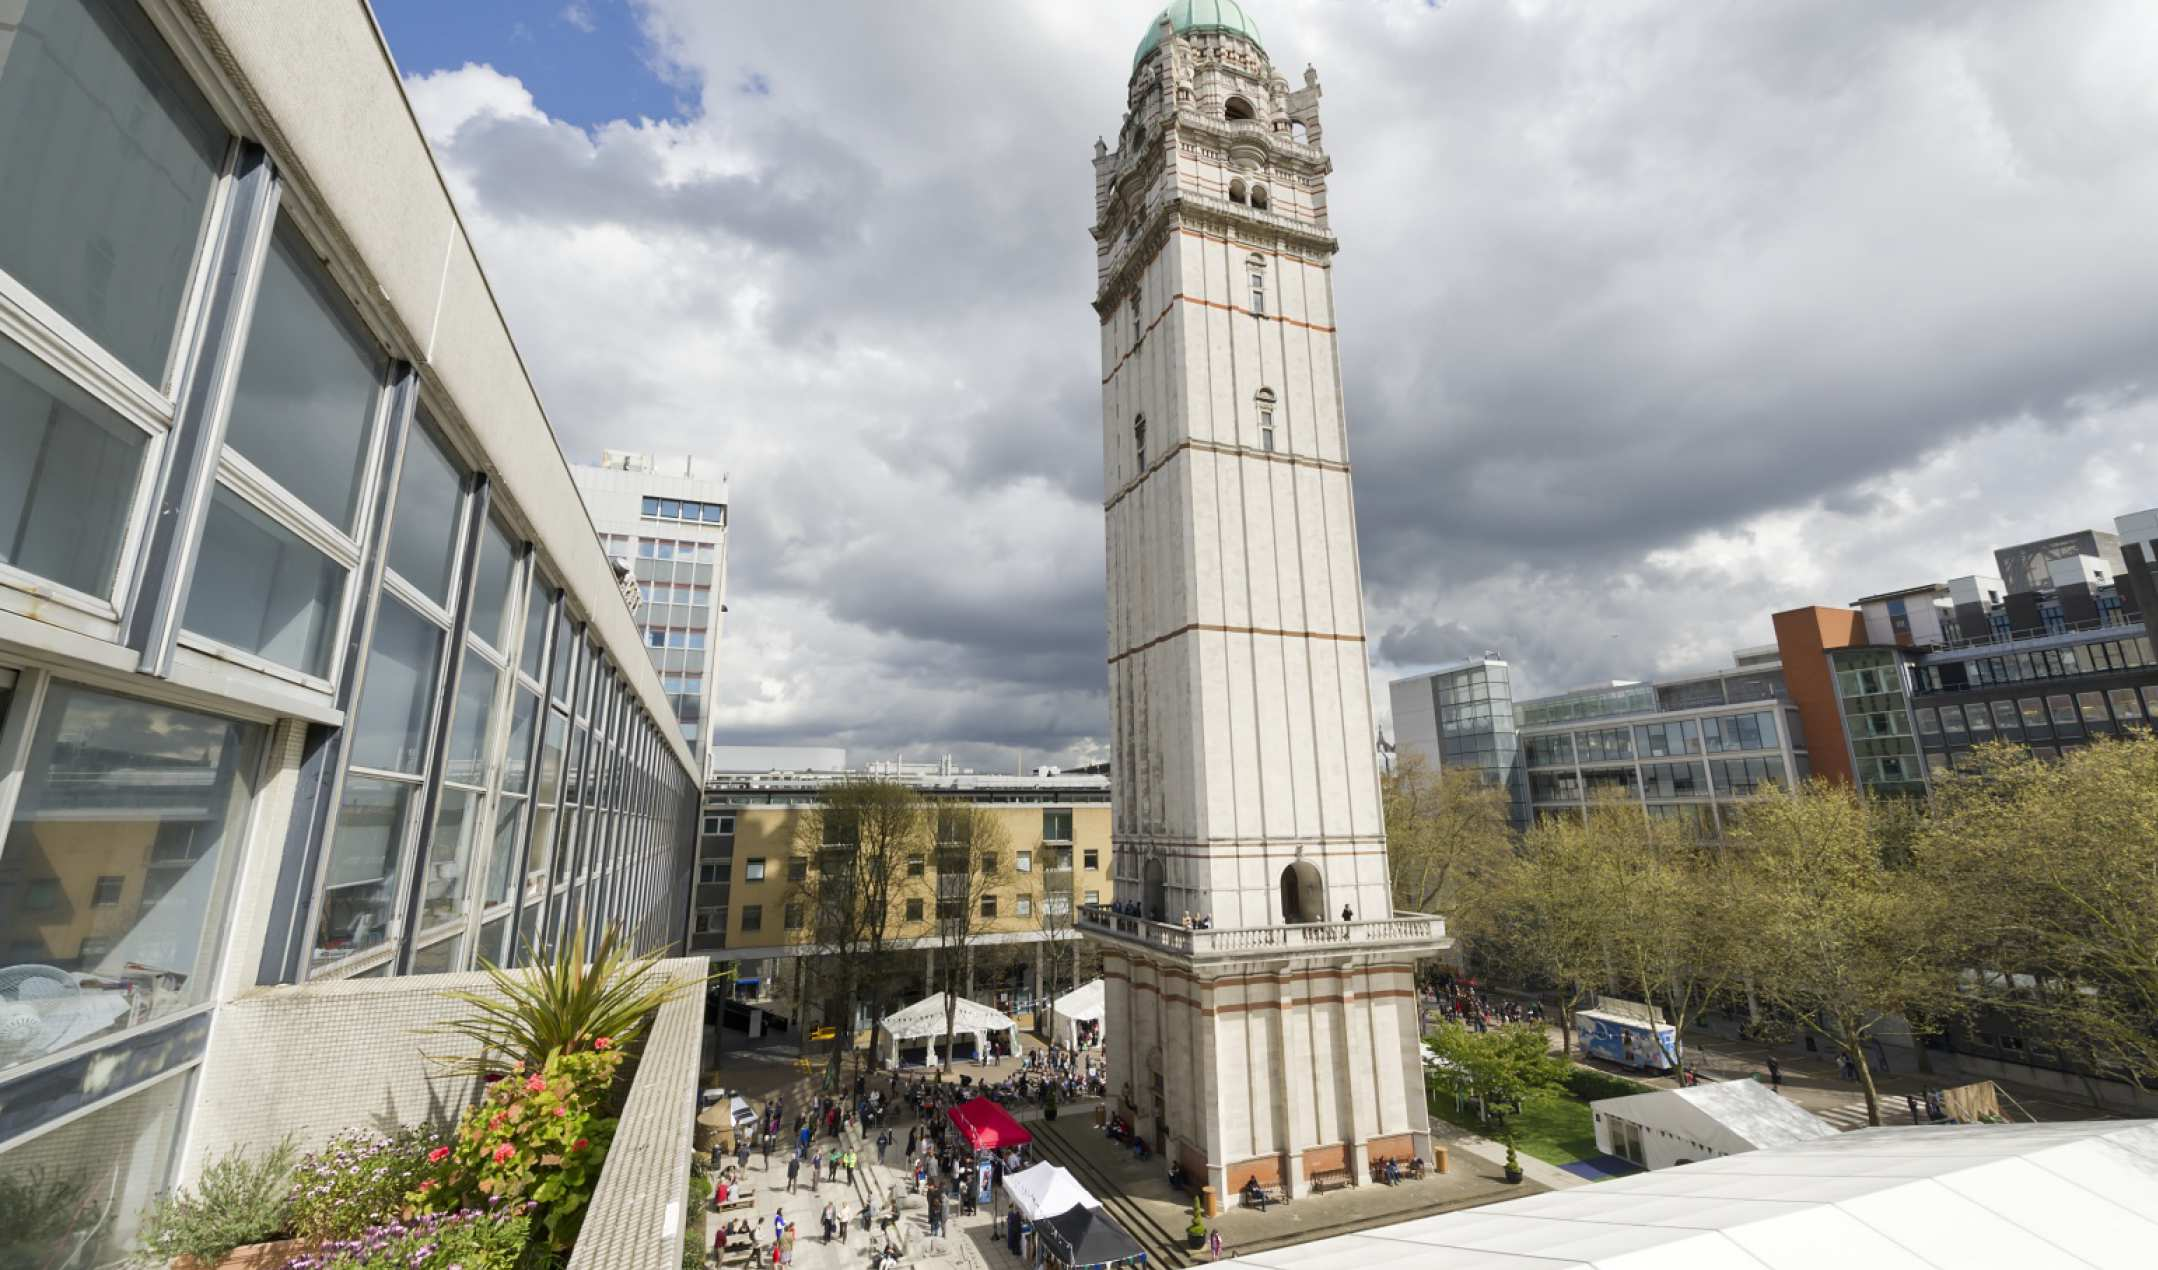 The queens tower about imperial college london many activities events markets festivals and parties take place at the foot of the queens tower altavistaventures Choice Image